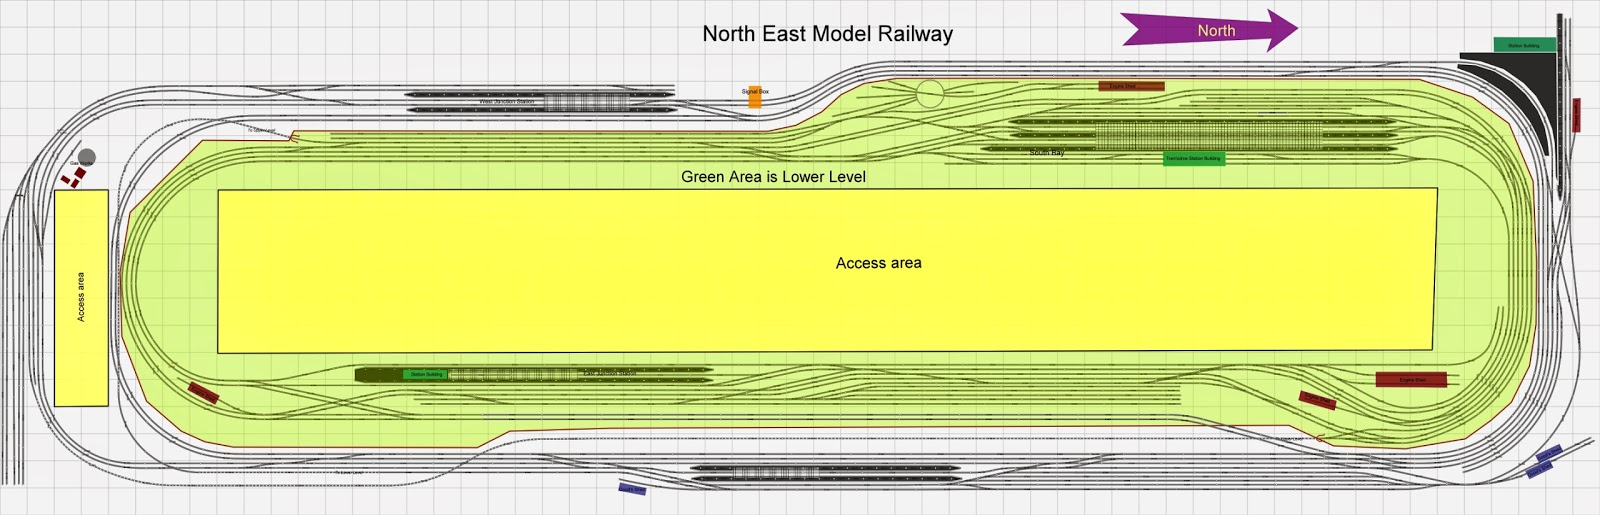 North East Model Railway Trenholme Junction Track Plan